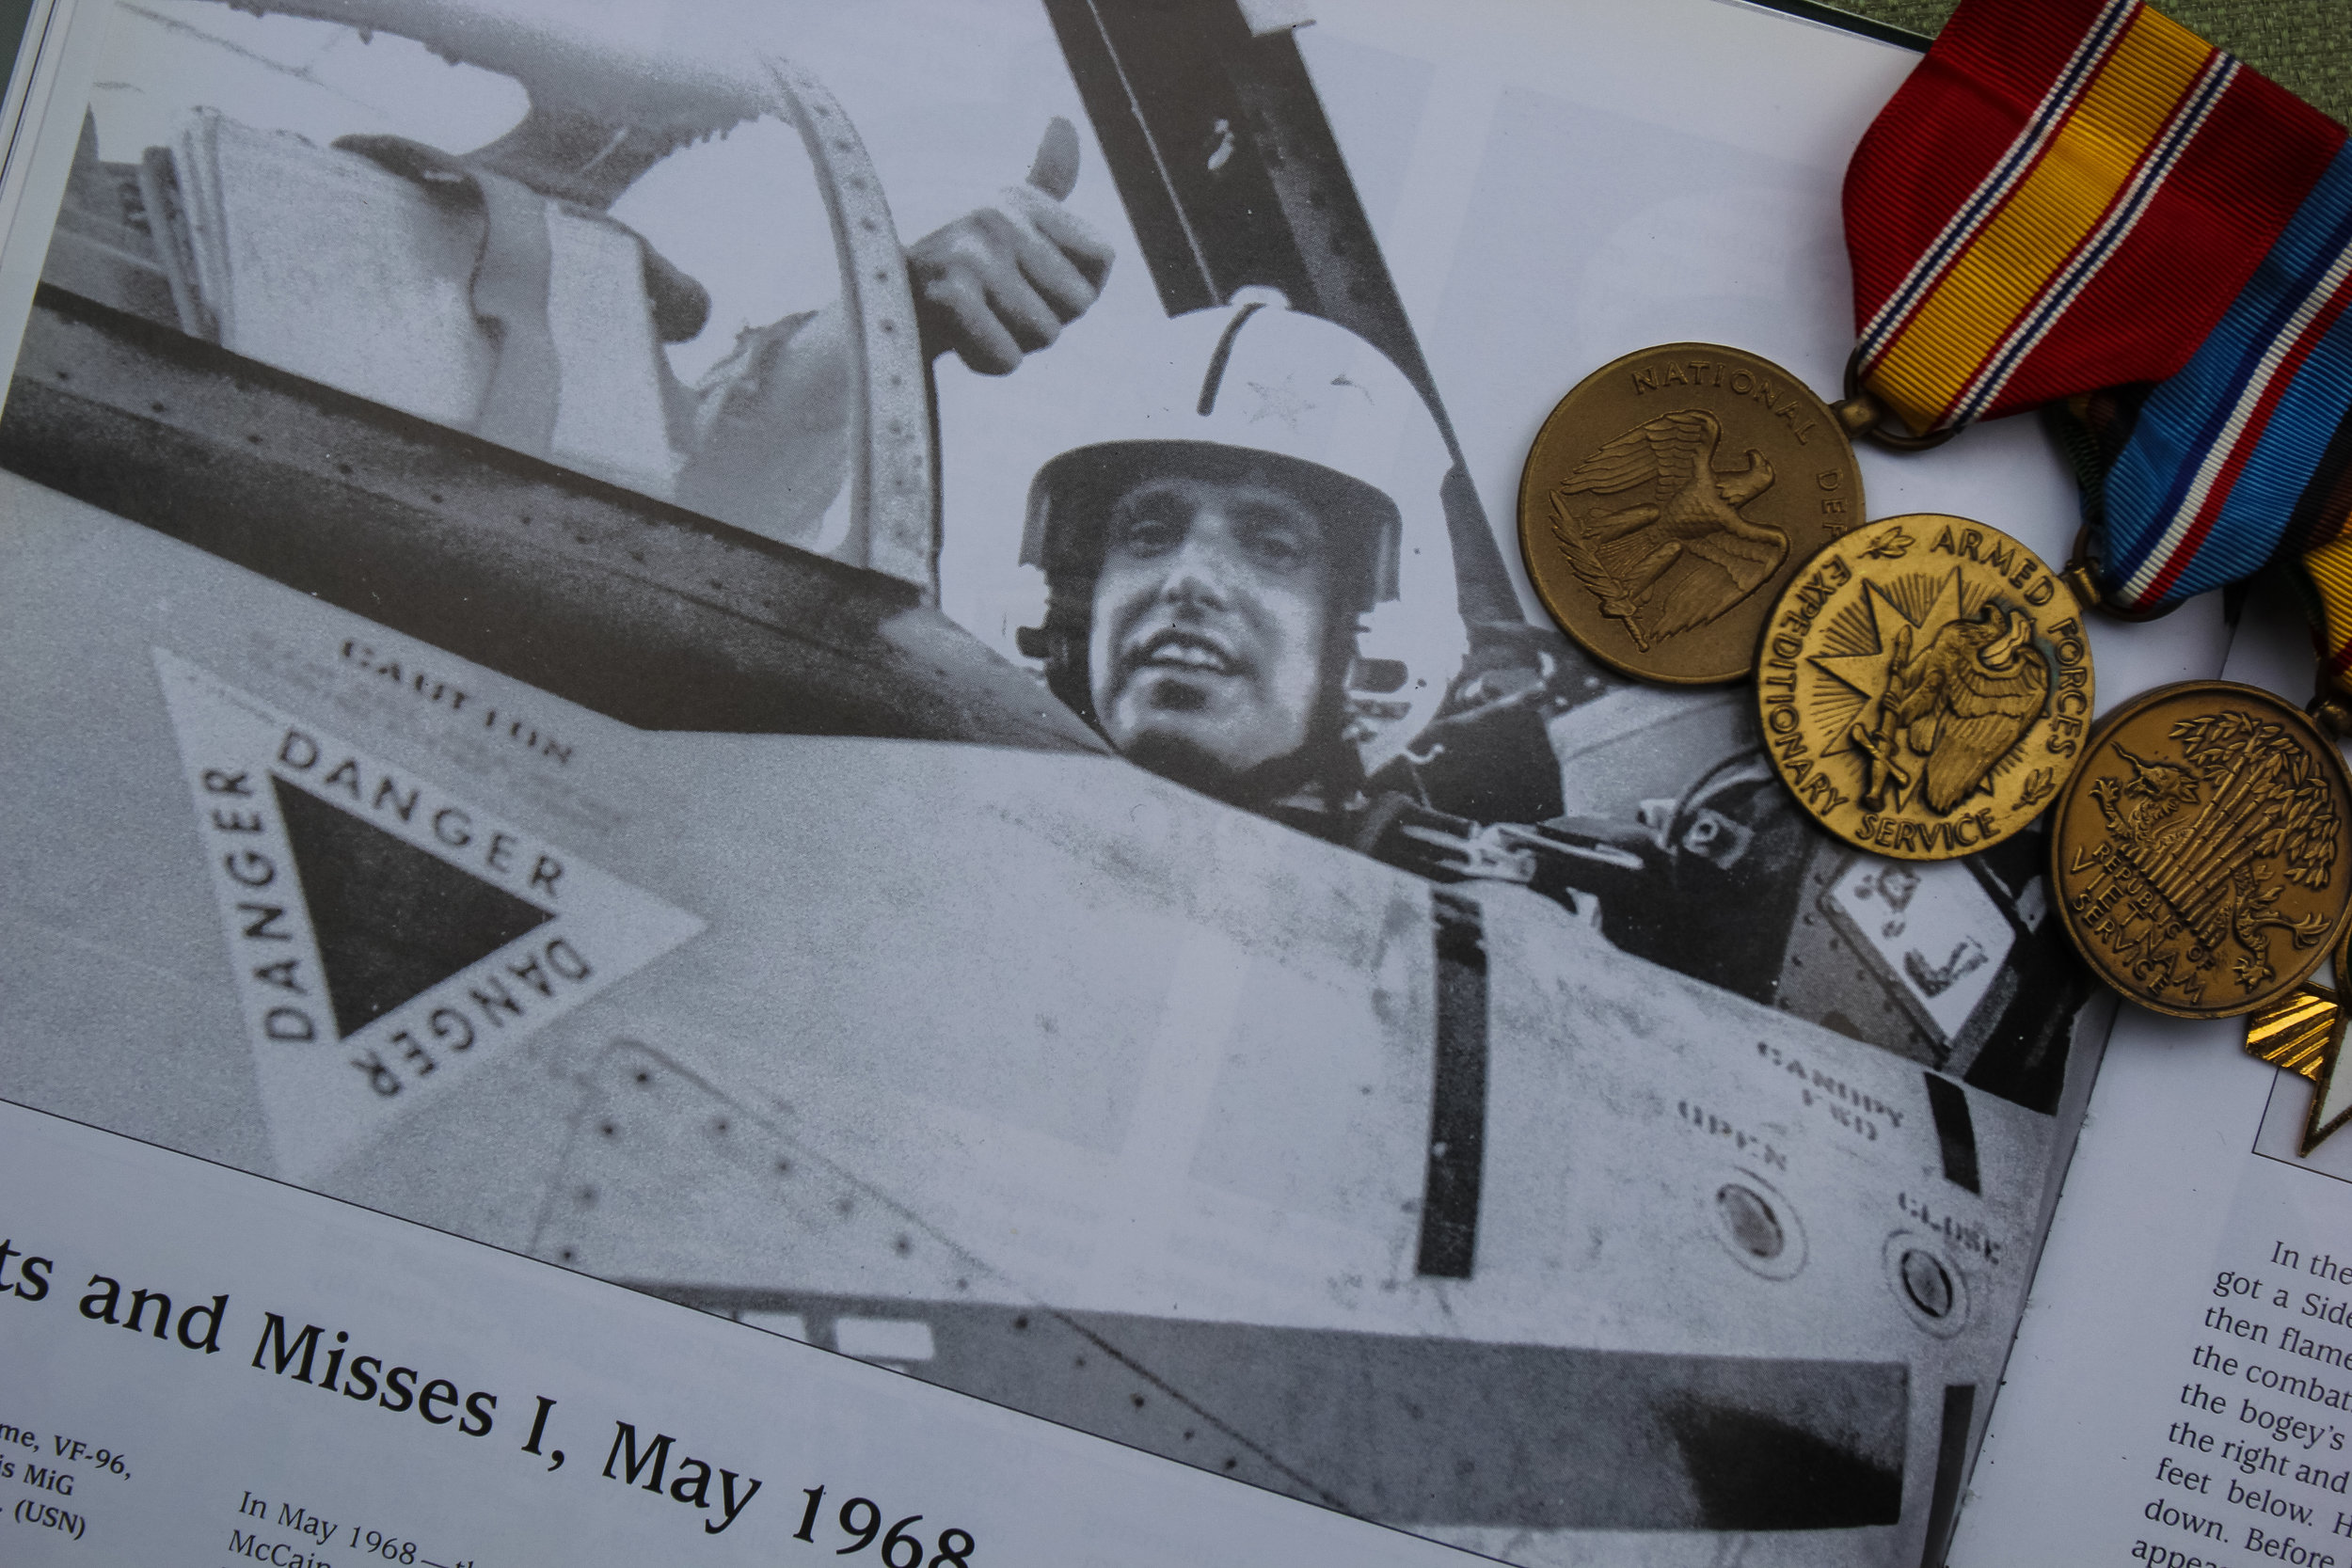 Mementos and metals from Robert Clime's naval service.